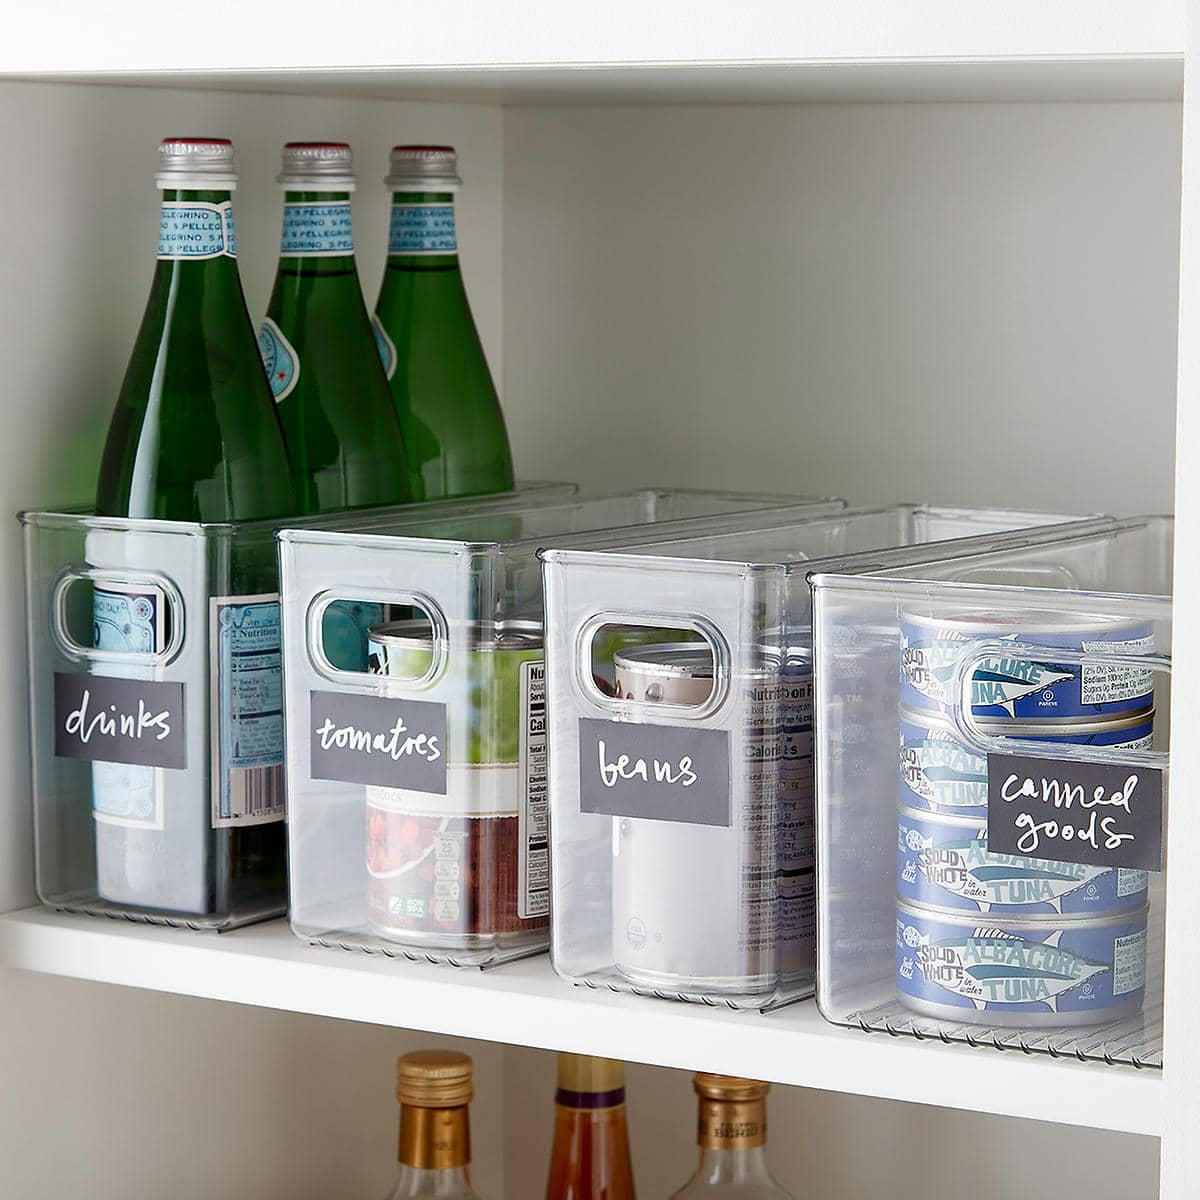 Get Labeled Clear Storage Containers